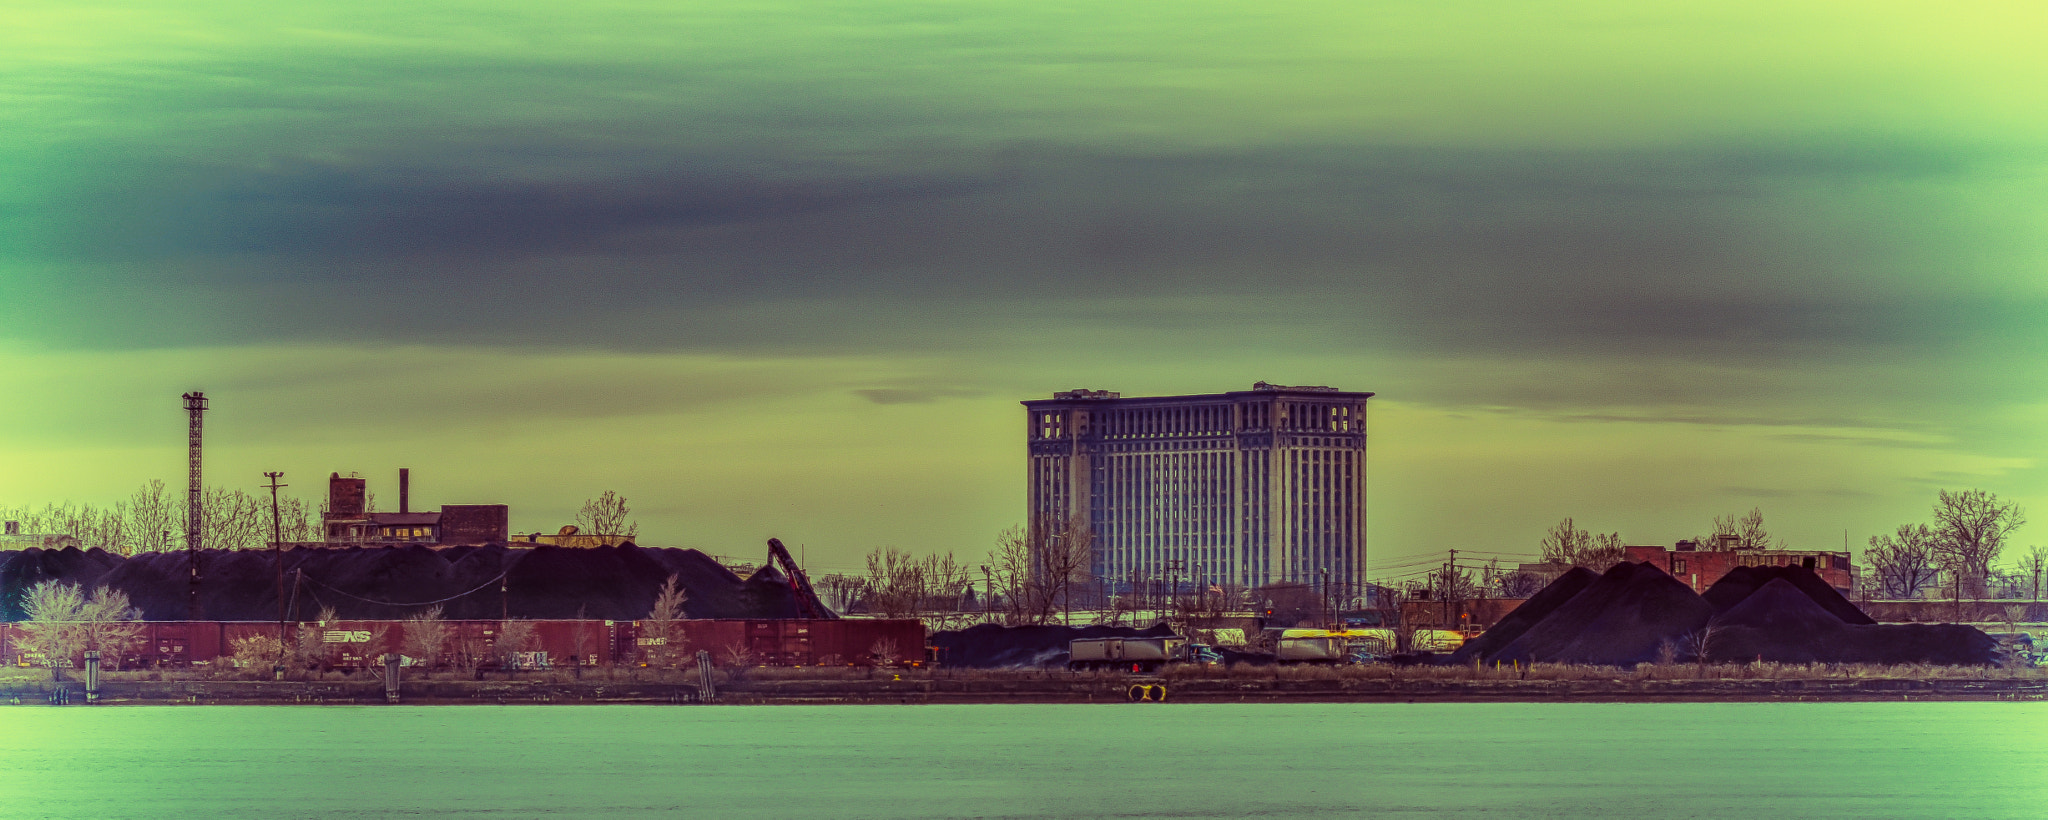 Photograph Michigan Central Station by Steven Wosina on 500px